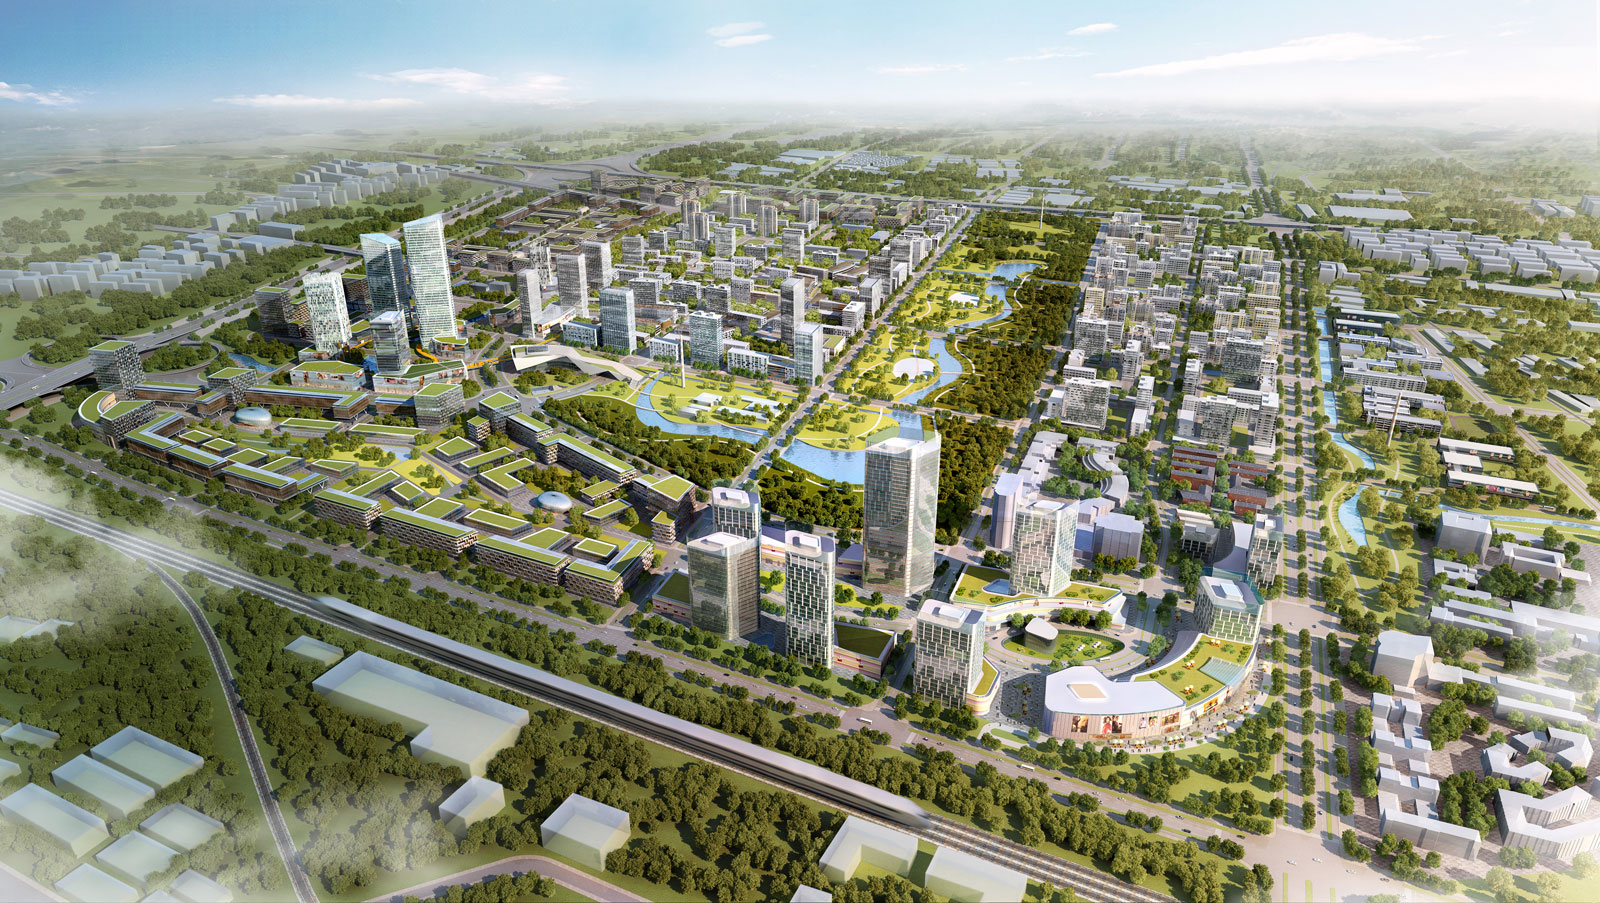 A graphic representation of the Taopu Smart City. Image via BDP